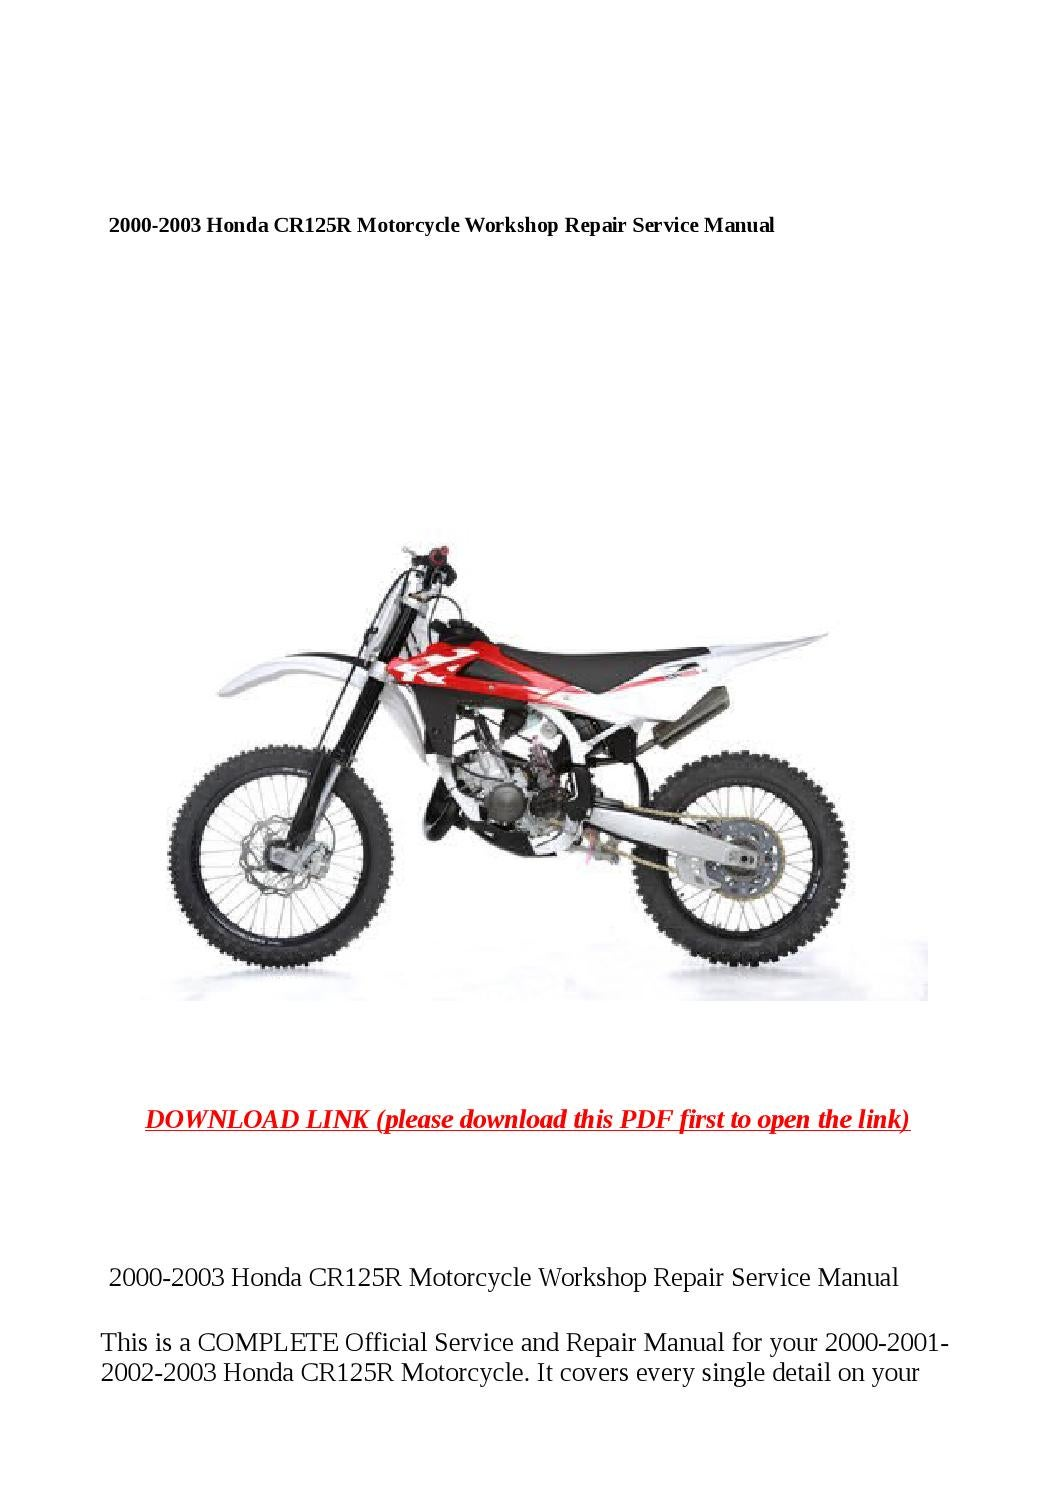 honda trx450 foreman series atv 1998 2004 service repair manual Array - cr125r  manual rh parallel welten info